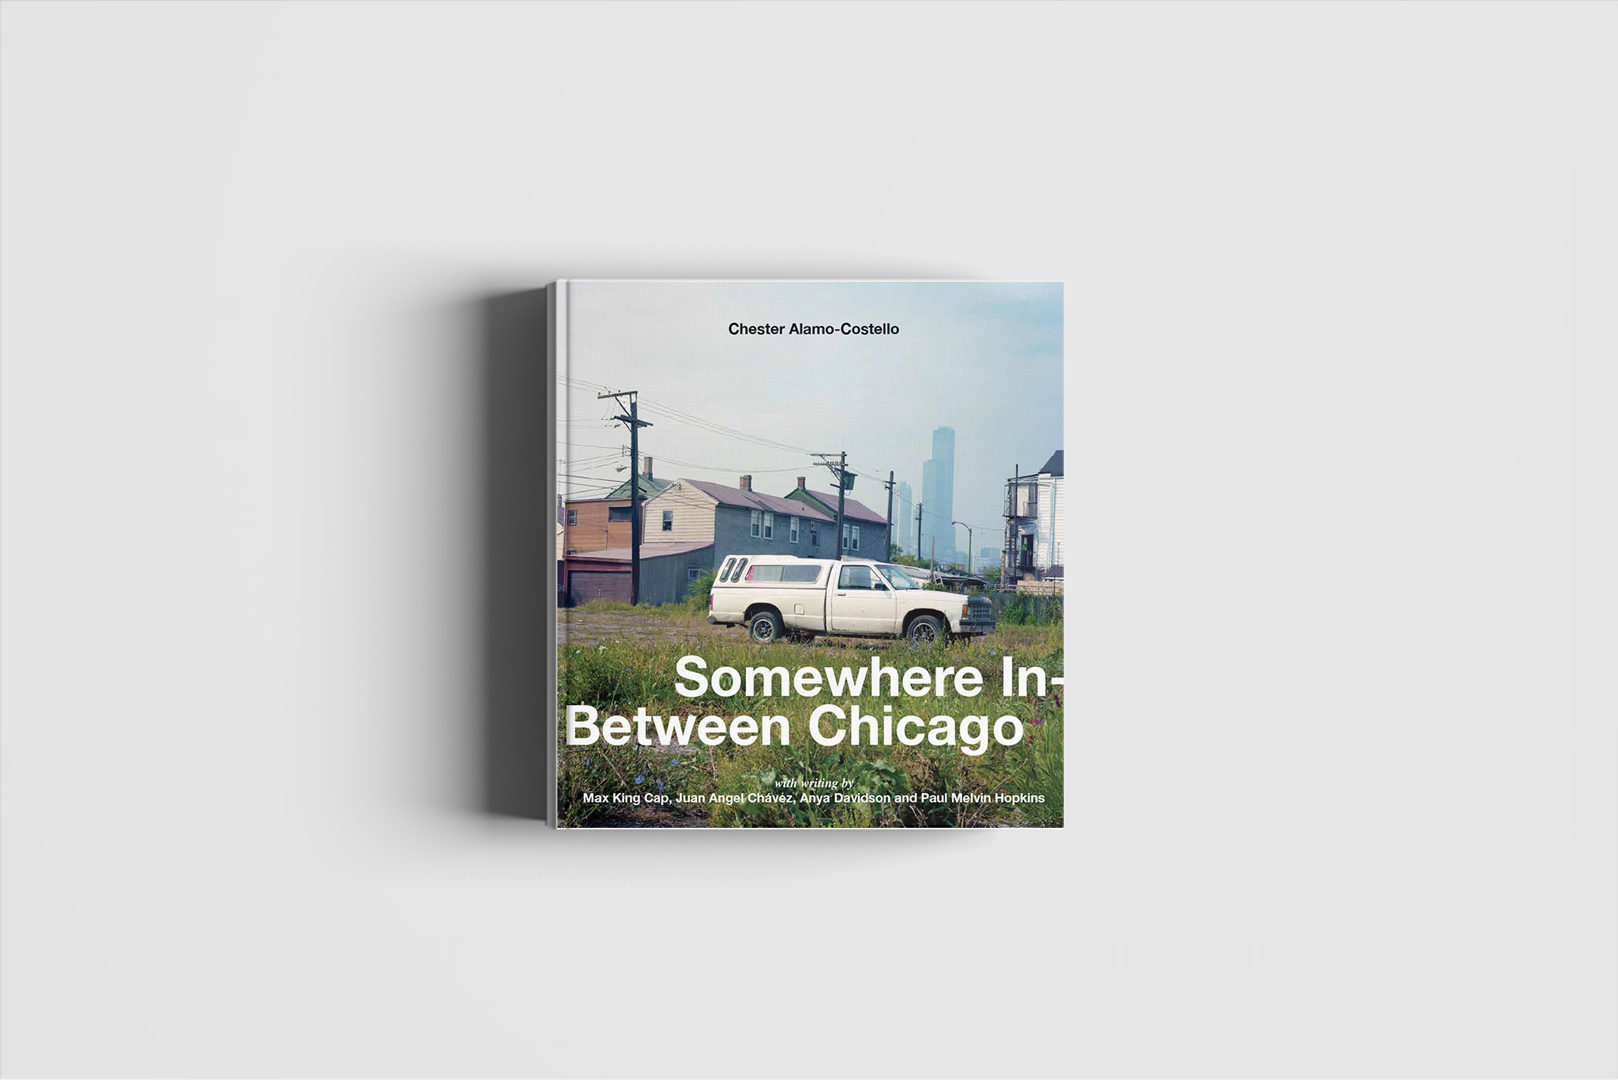 picture of the book Somewhere In-Between Chicago by Chester Alamo Costello